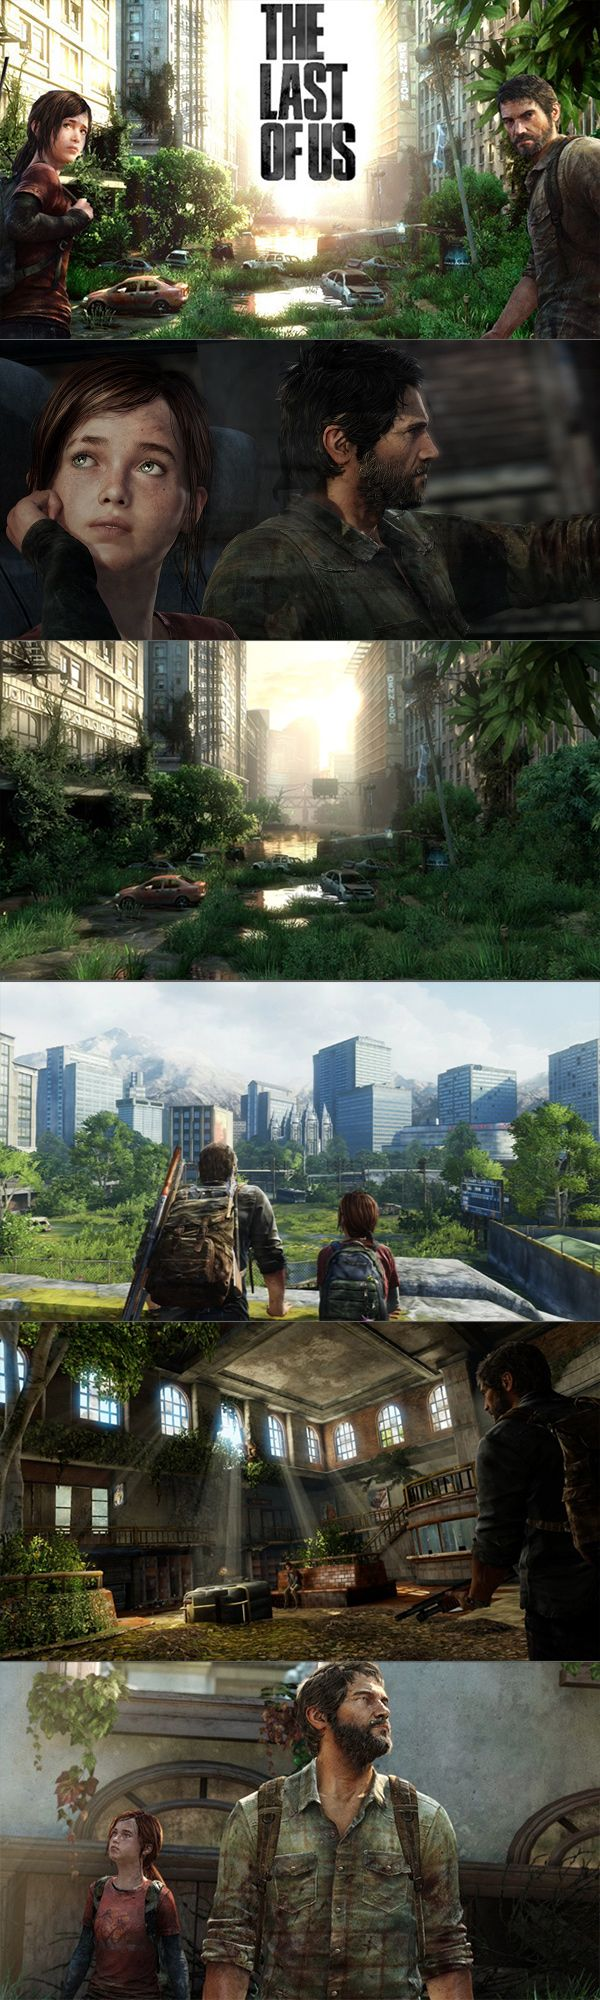 The Last of Us Film Adaptation - Post Apocalypse Survival Movie